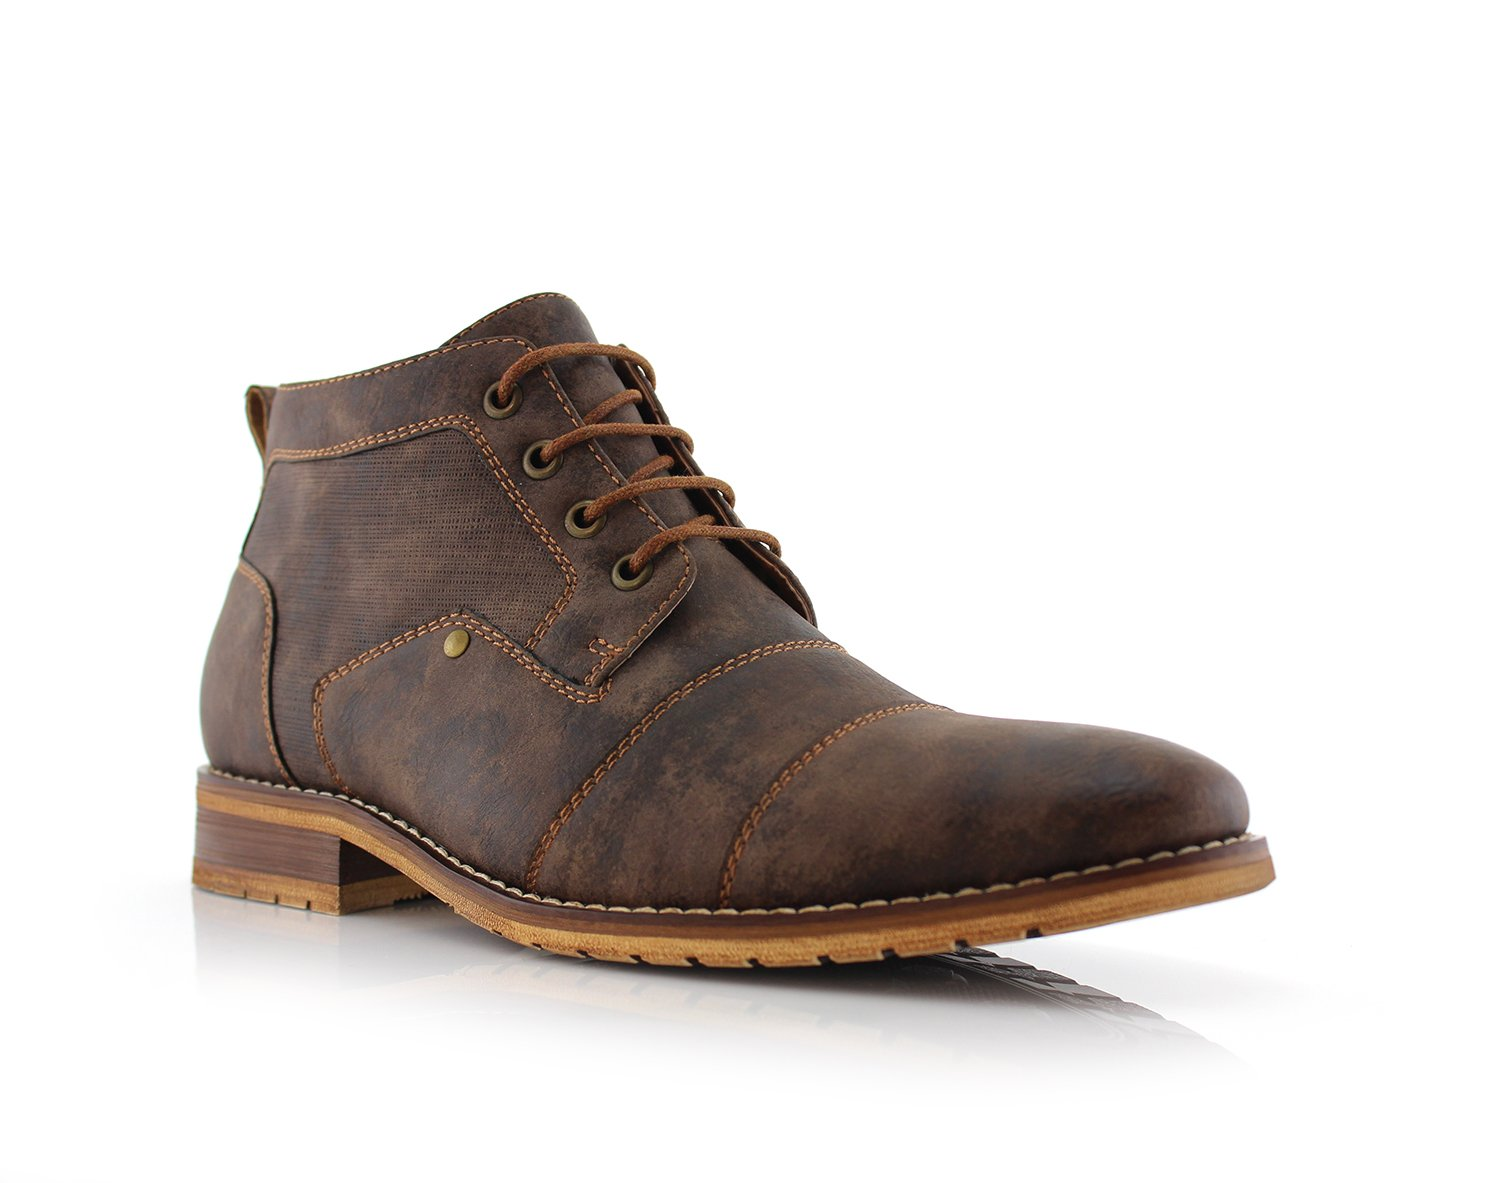 Ferro Aldo Blaine MFA806035 Mens Casual Brogue Mid-Top Lace-up and Zipper Boots – Brown, Size 10.5